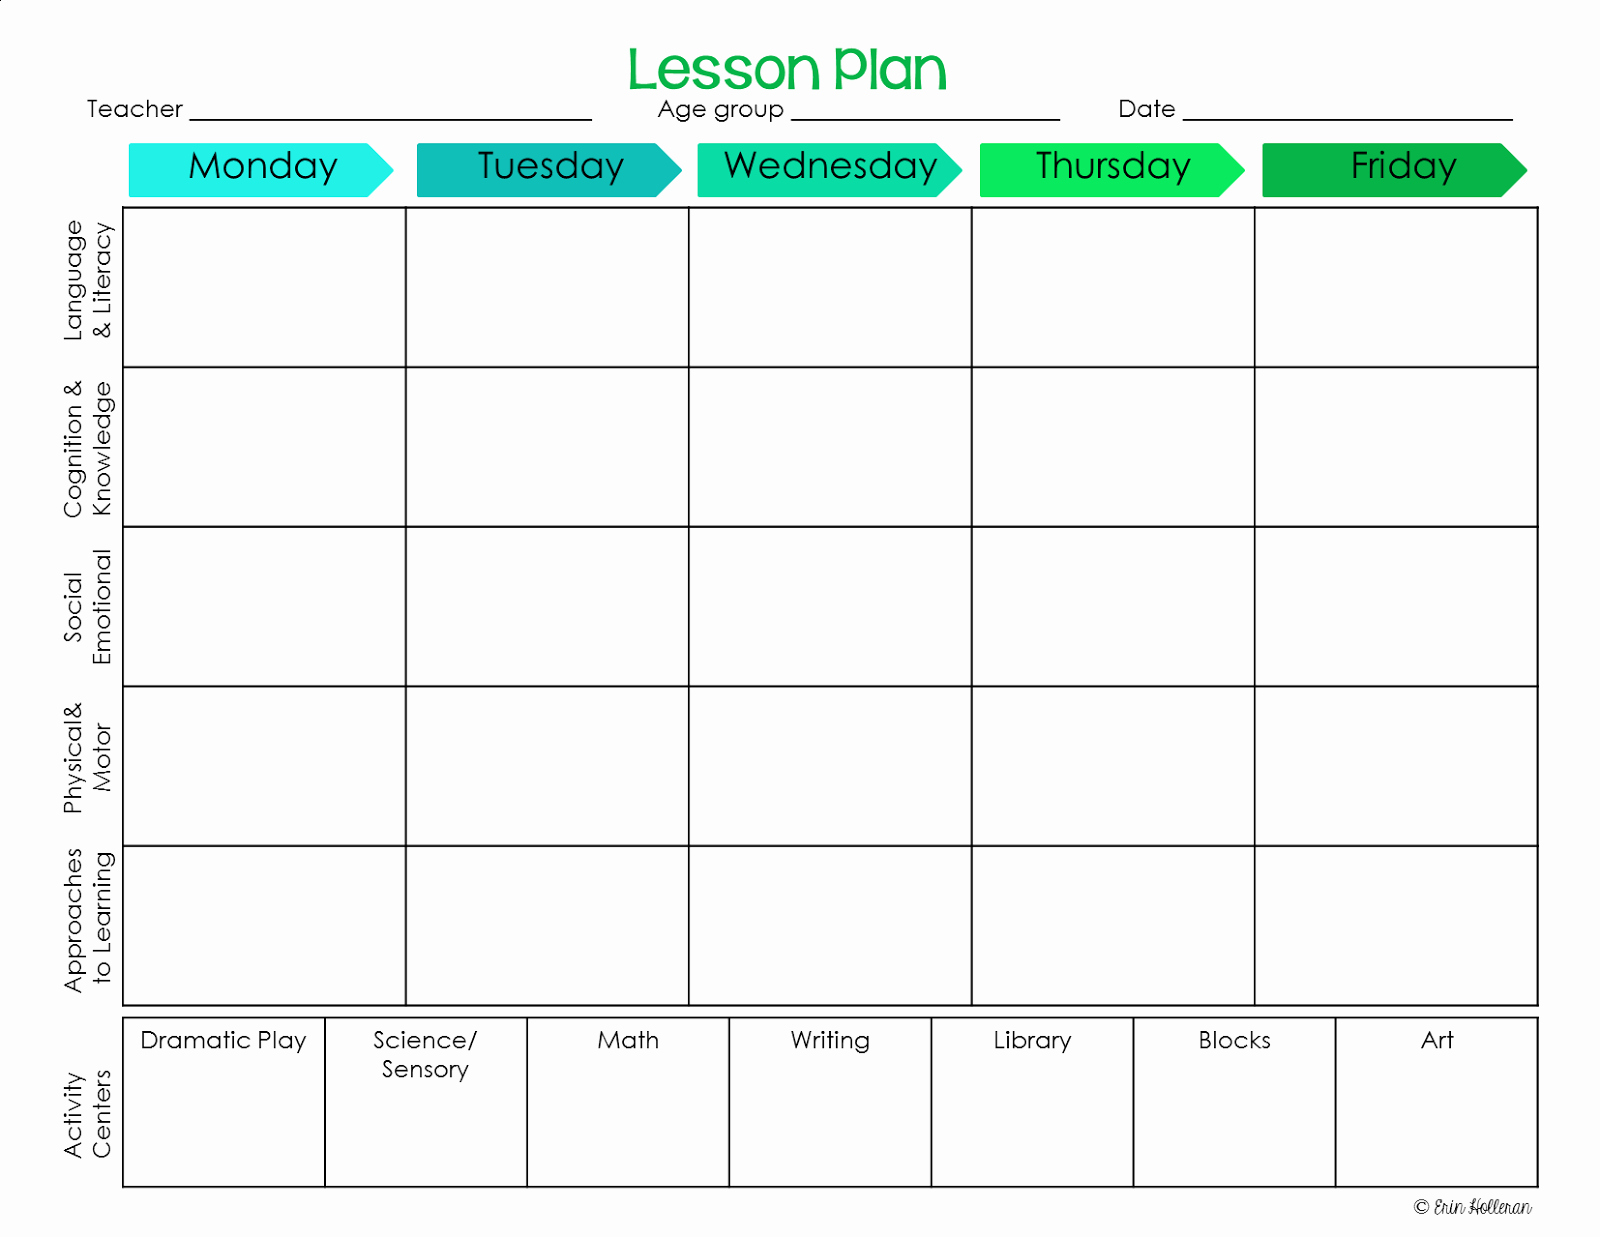 Lesson Plan Templates Kindergarten Unique Preschool Ponderings Make Your Lesson Plans Work for You